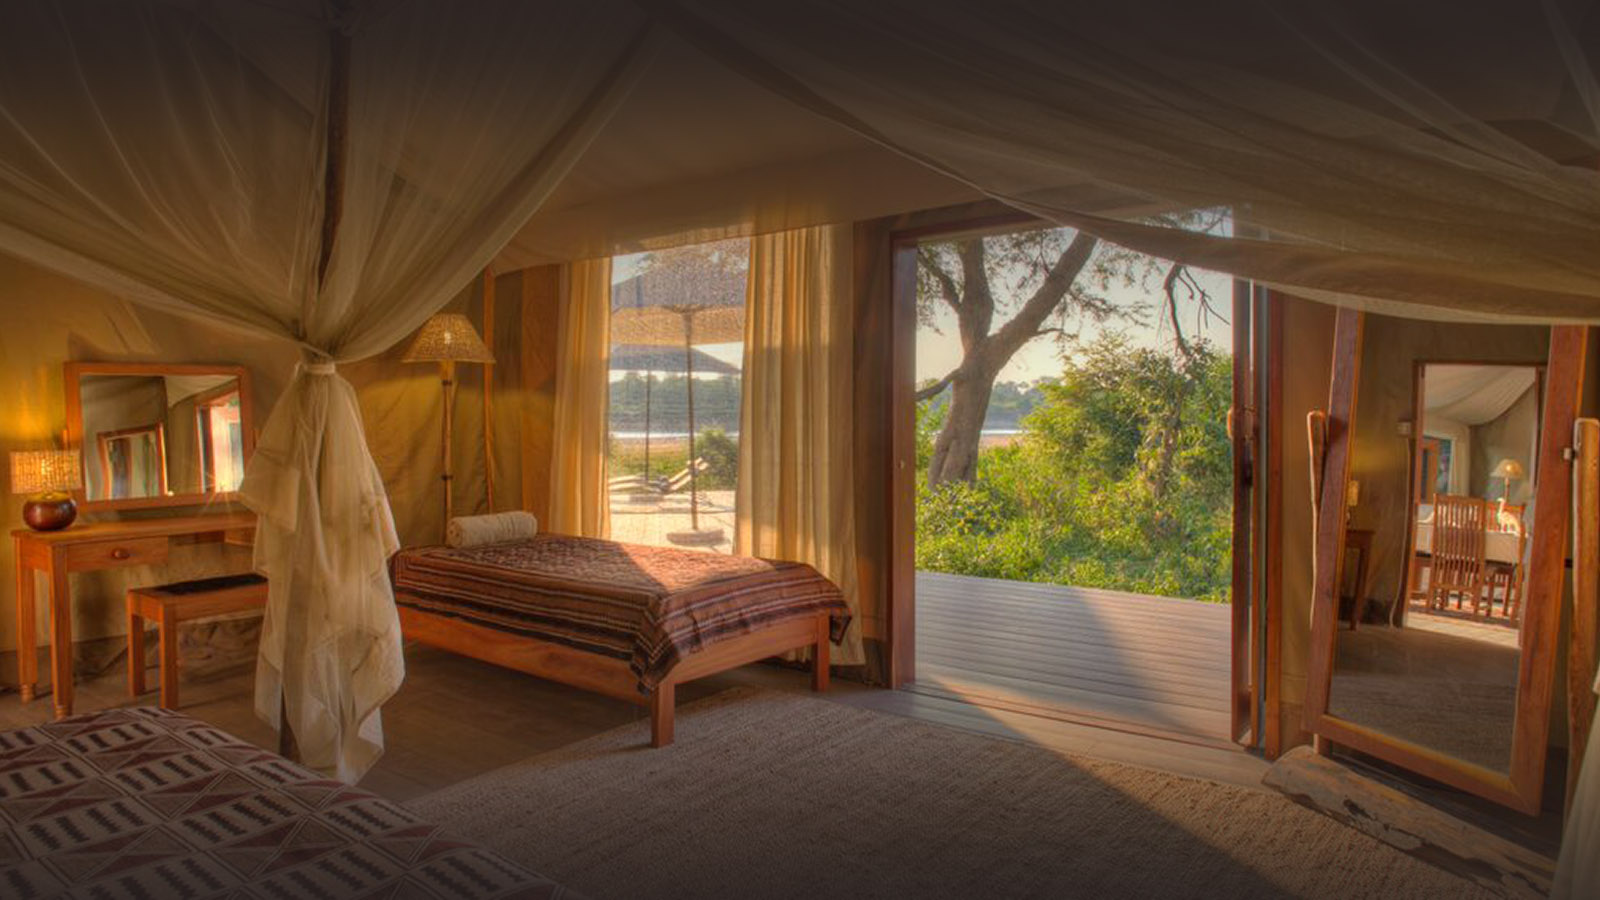 croc-nest-bedroom-flatdogs-zambia-in-style-south-luangwa-national-park